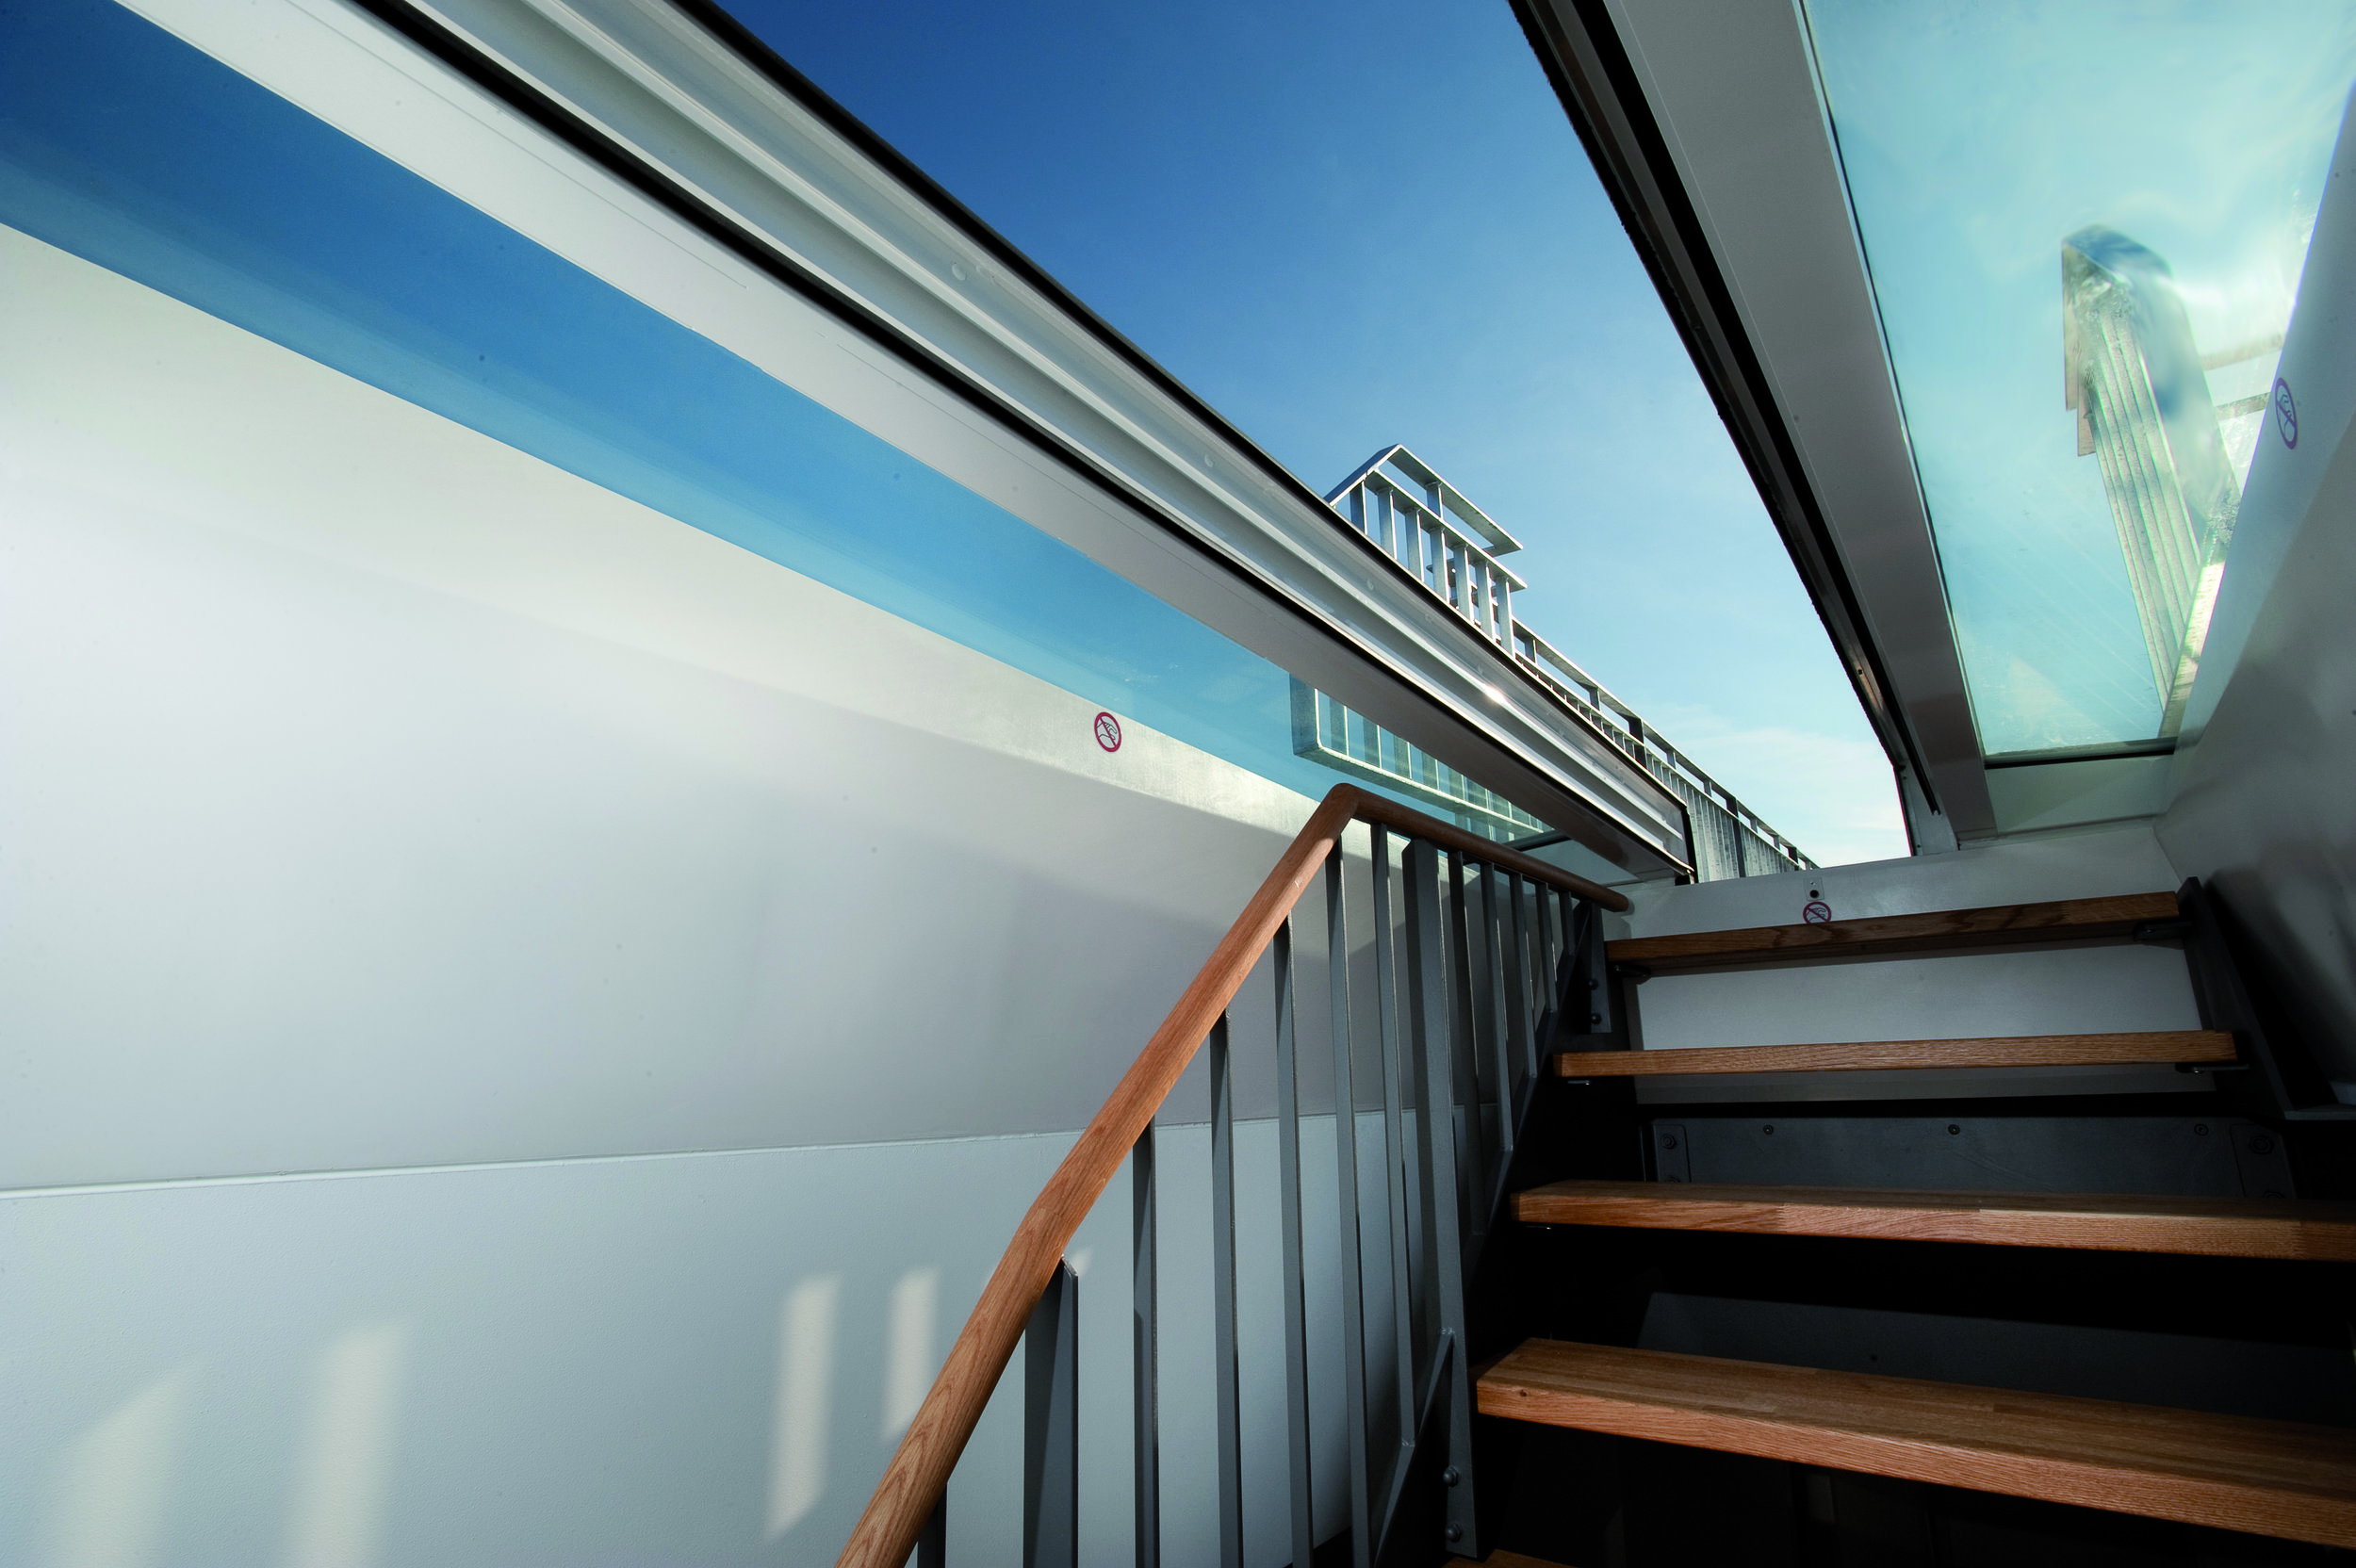 Sliding door high performance exit hatch, avoids the need for a bulkhead, allows roof access to rooftop gardens.